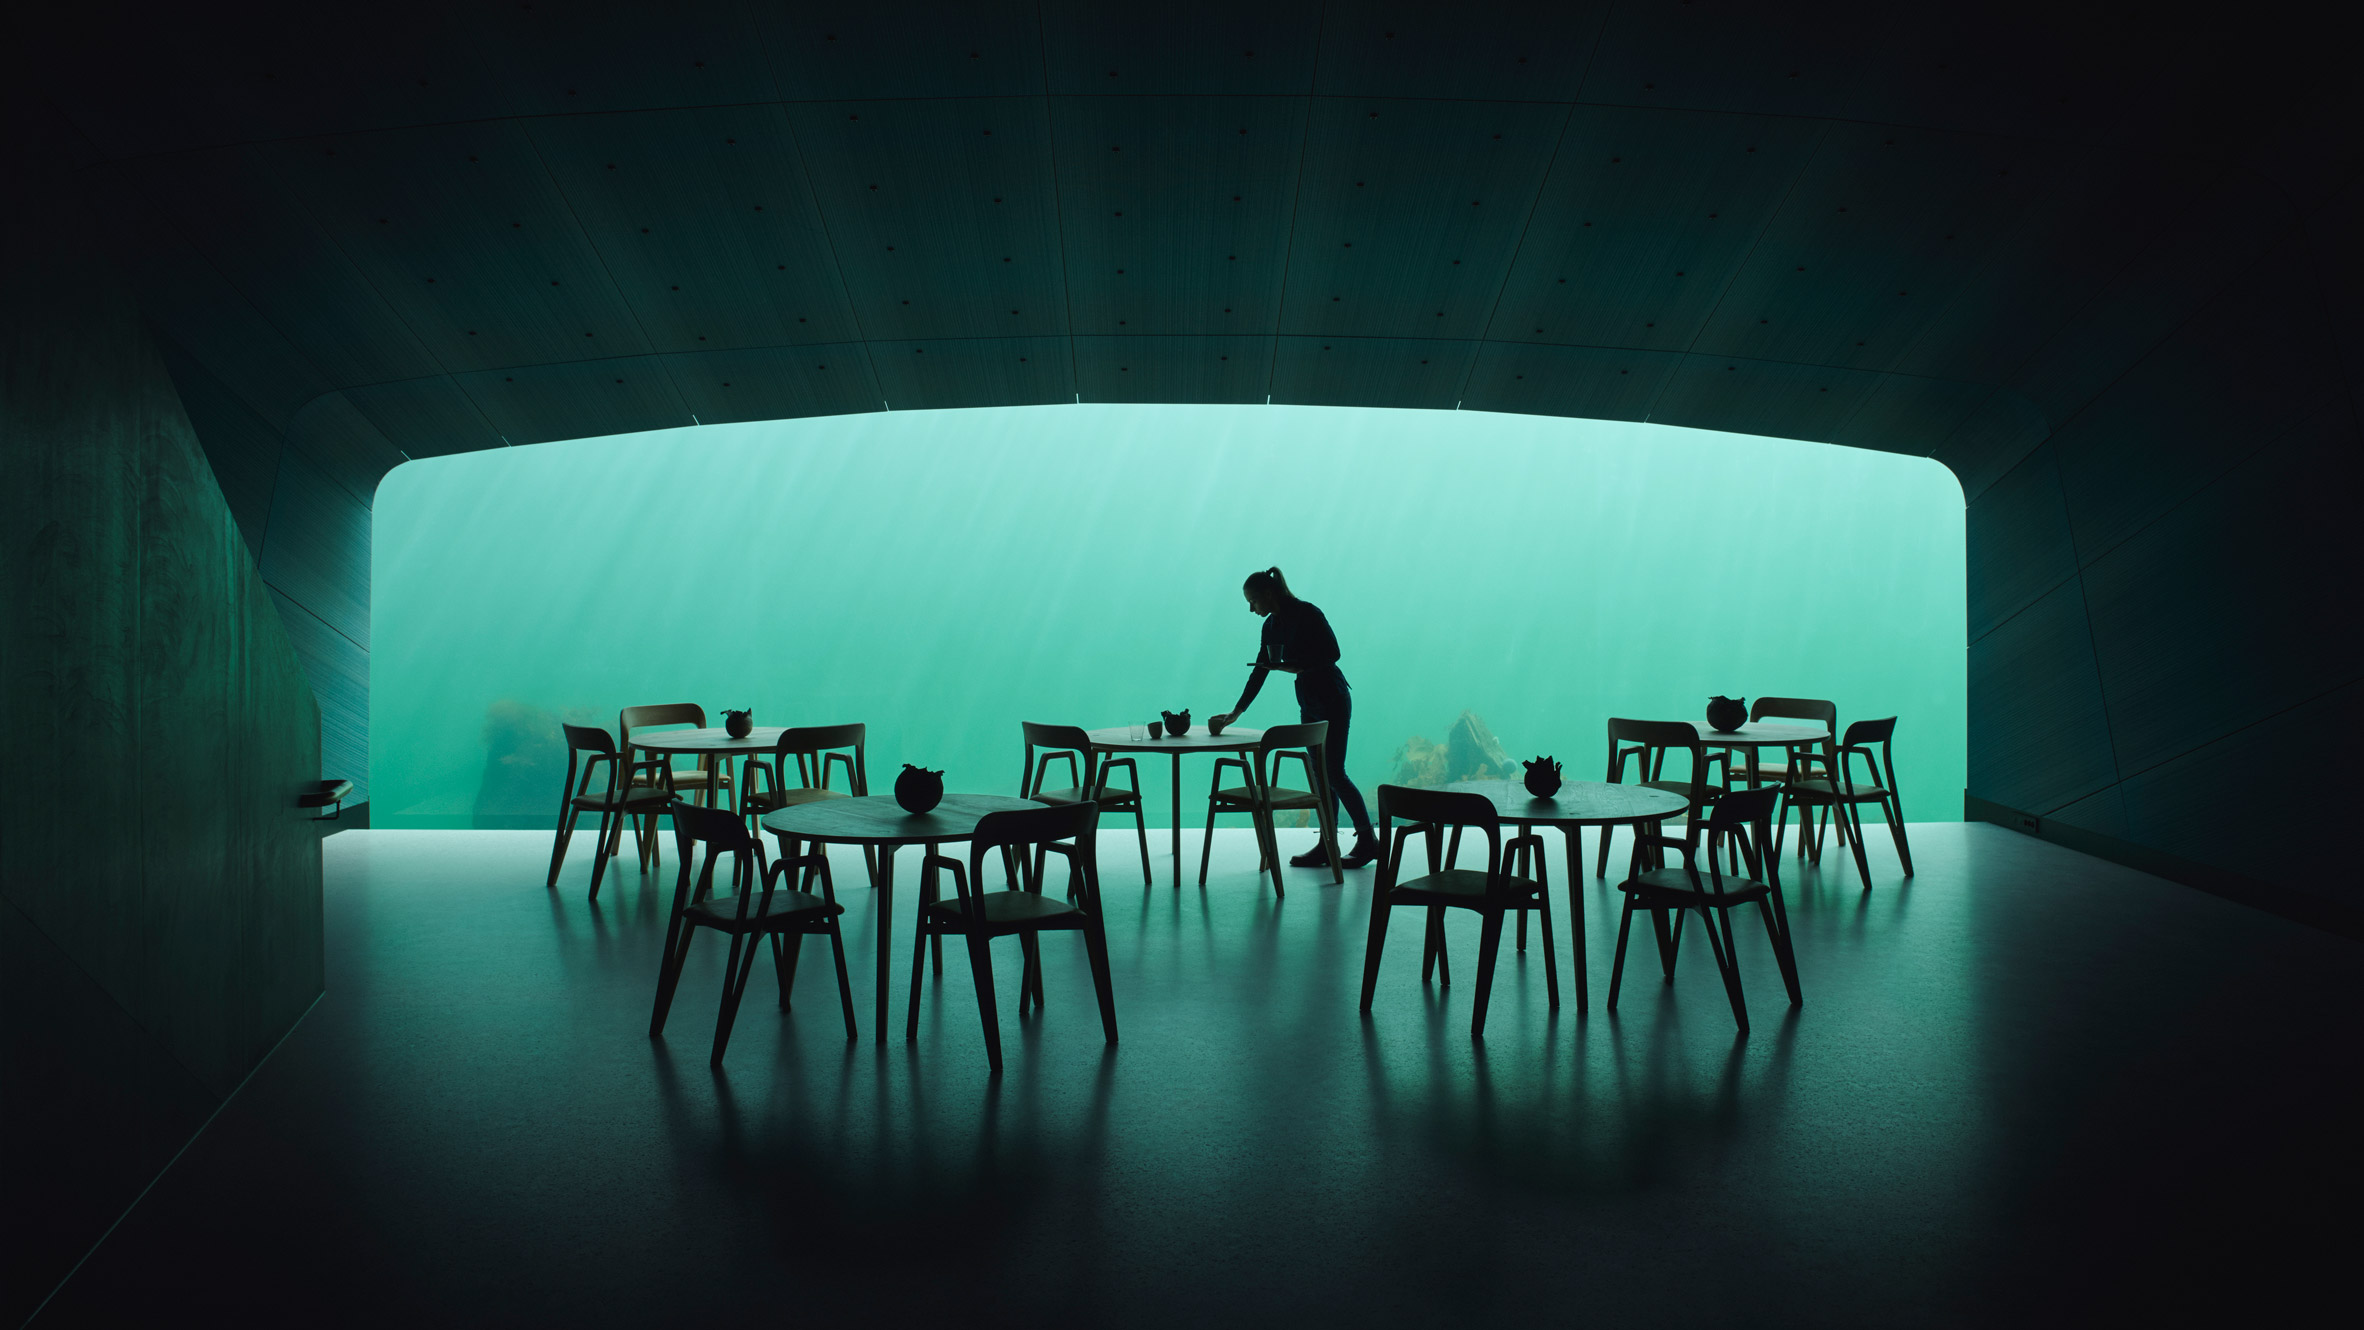 under-snohetta-underwater-restaurant-architecture-public-leisure-baly-lindesnes-norway_dezeen_2364_hero2.jpg